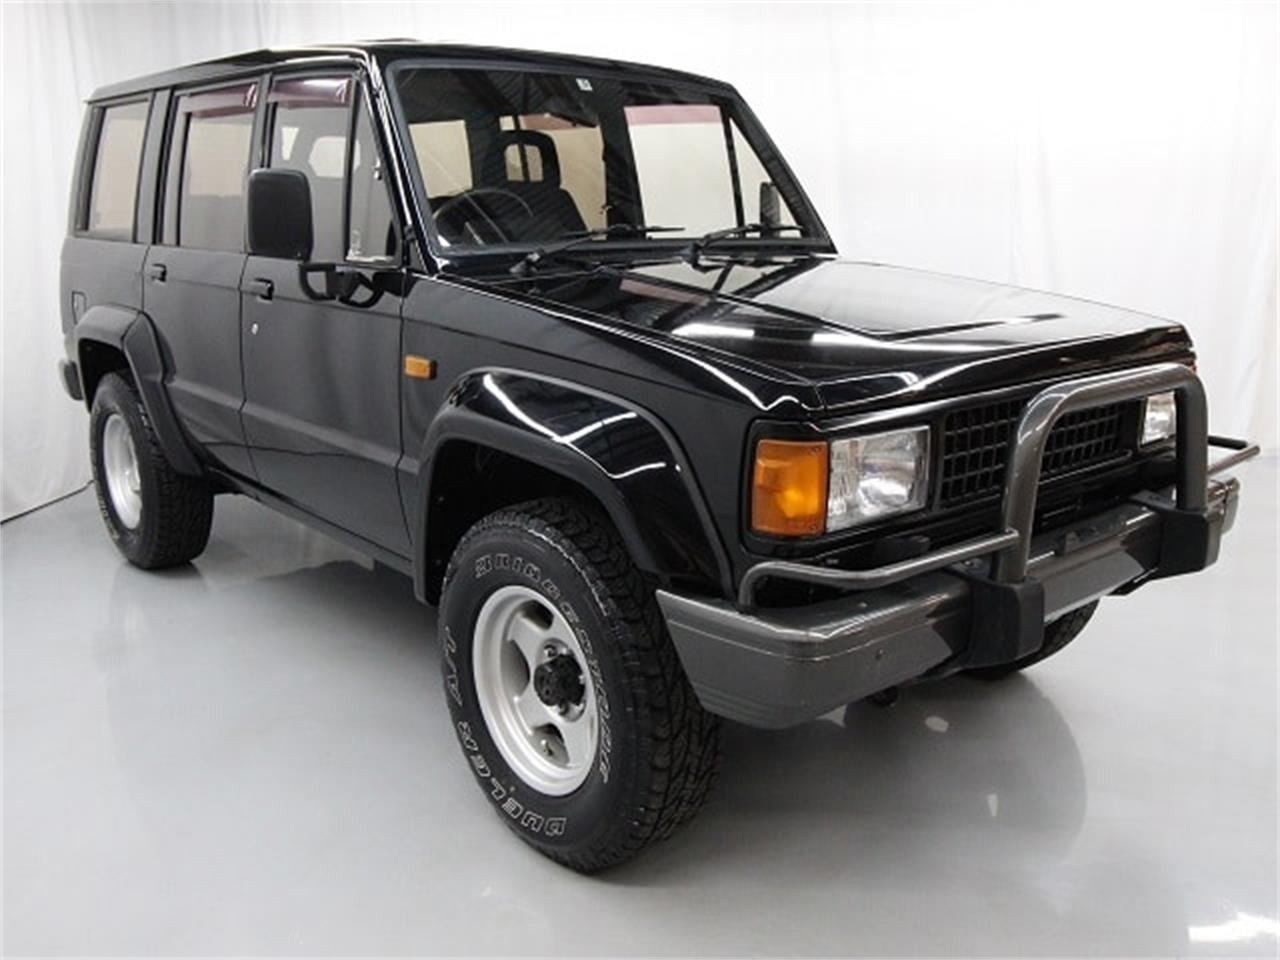 For Sale: 1989 Isuzu Trooper in Christiansburg, Virginia